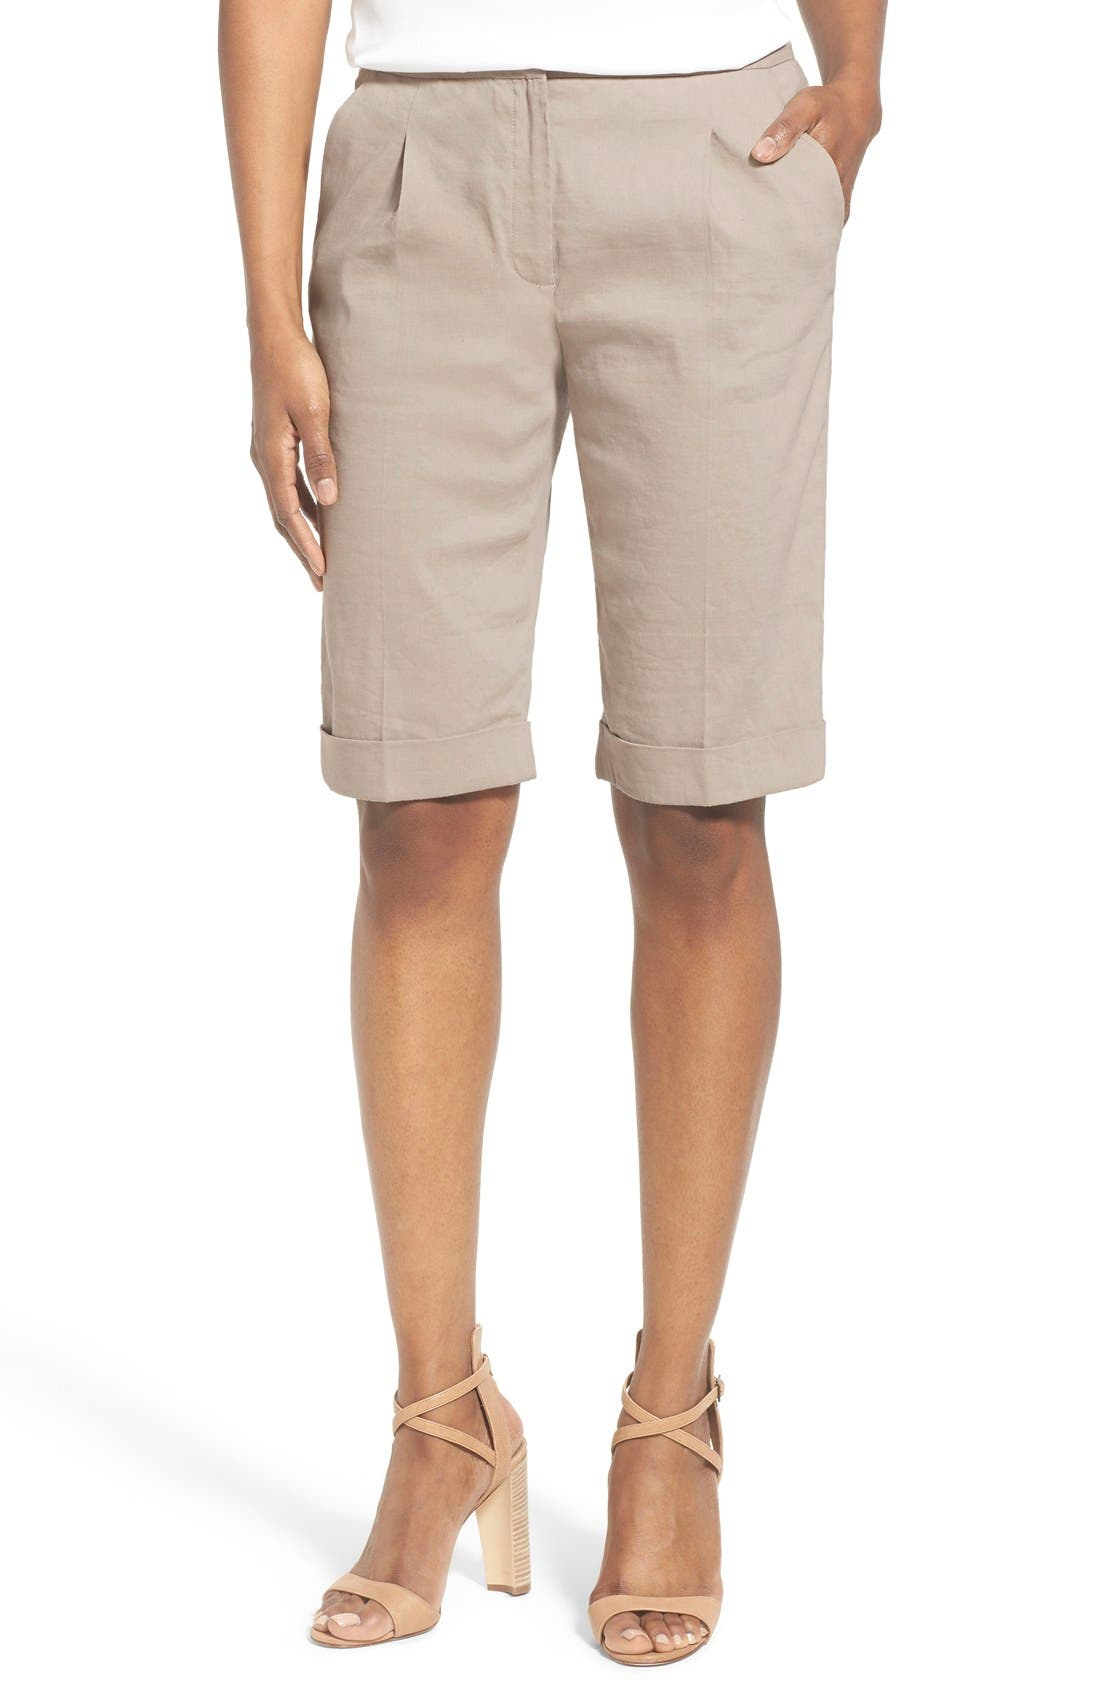 Main Image - Elie Tahari 'City' Cuff Linen Blend Walking Shorts